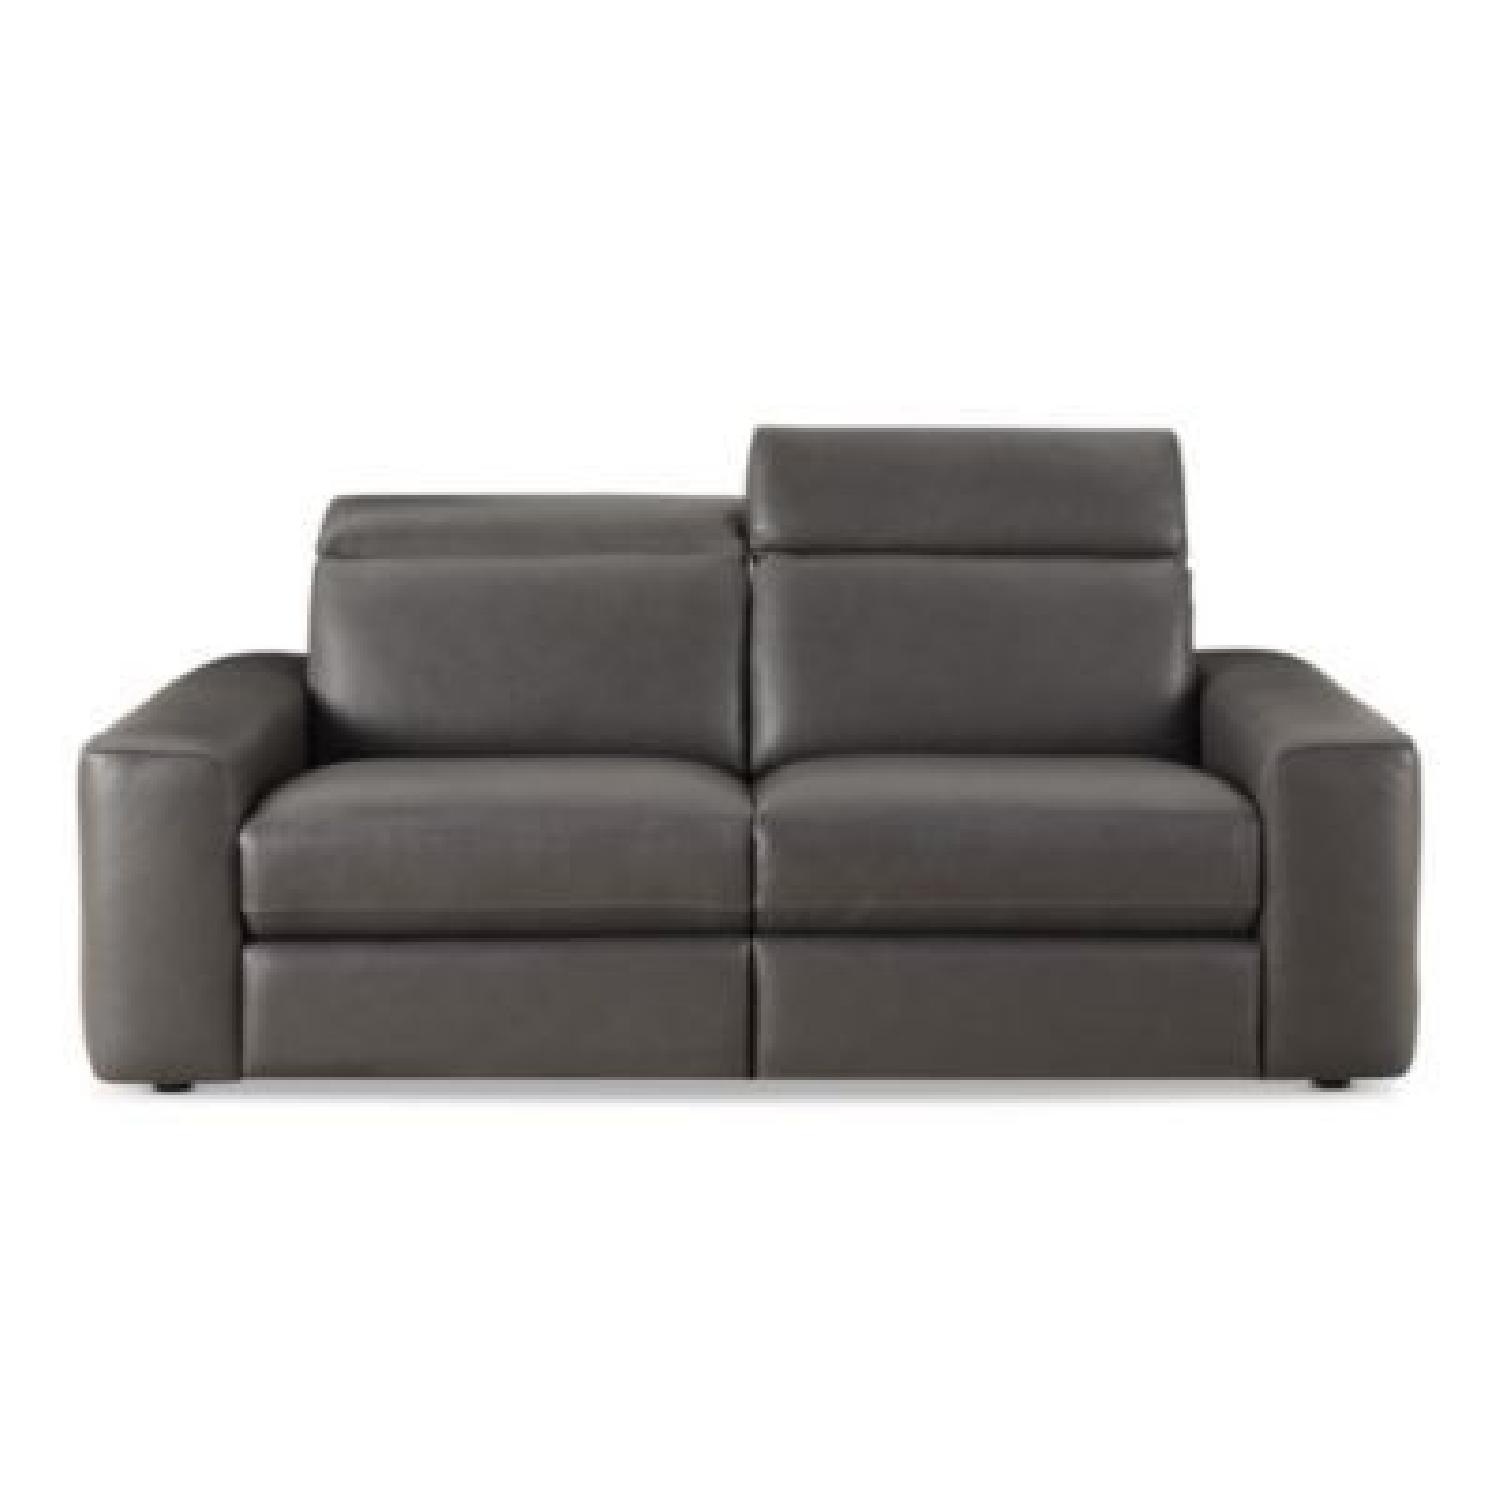 Chateau D'Ax Toby Reclining Sofa - image-0